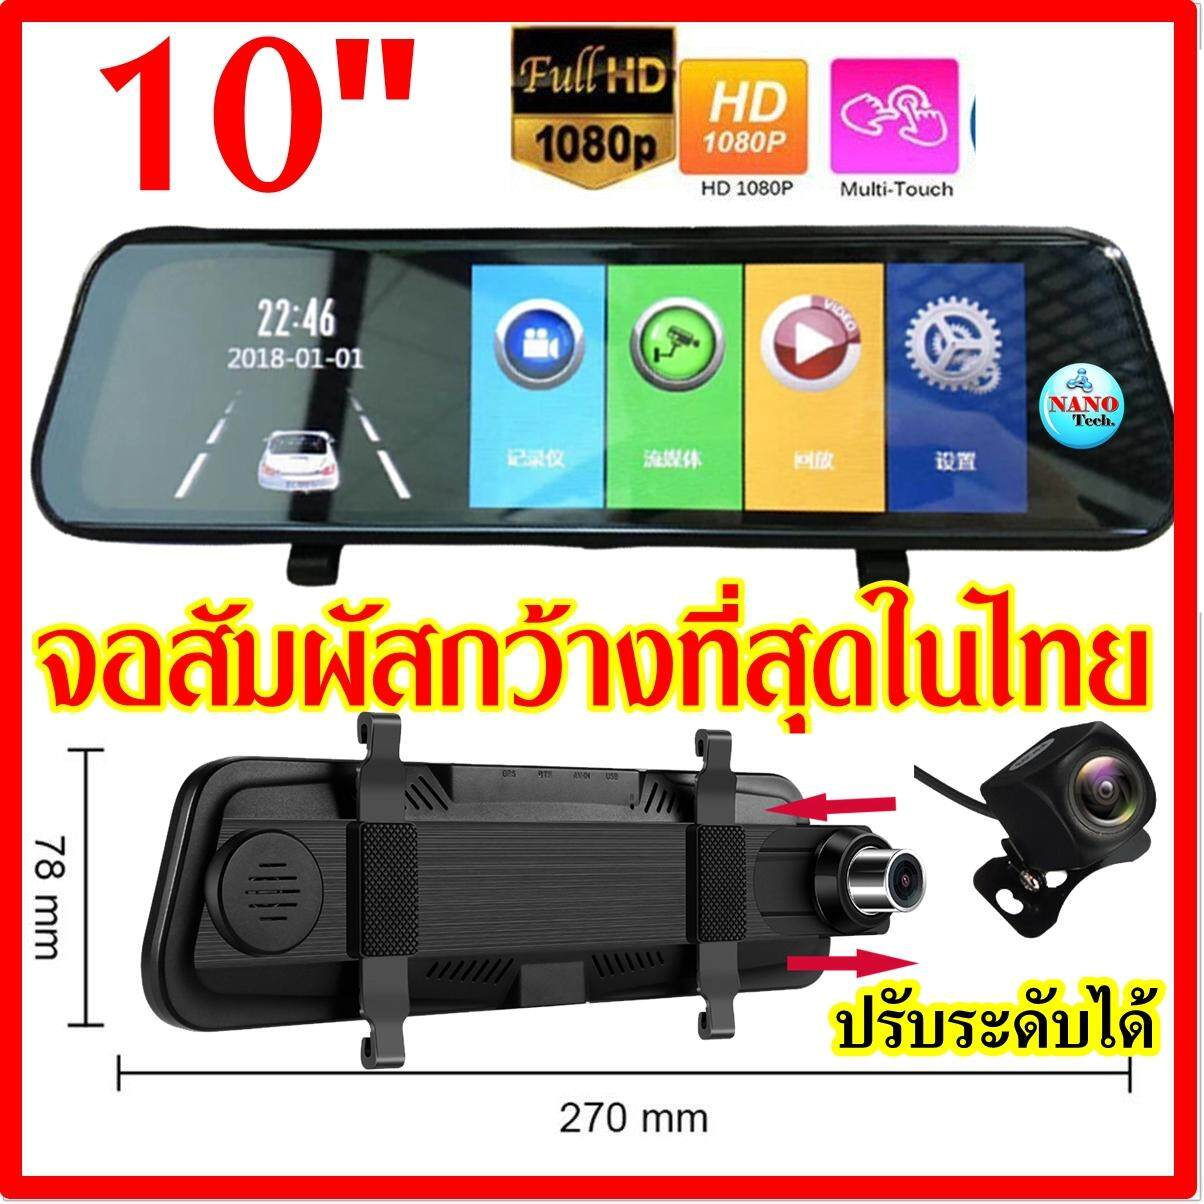 กล้องติดรถยนต์ Car DVR, Dash Cam Mirror Rear View Mirror Camera, Car Video Recorder ,10""